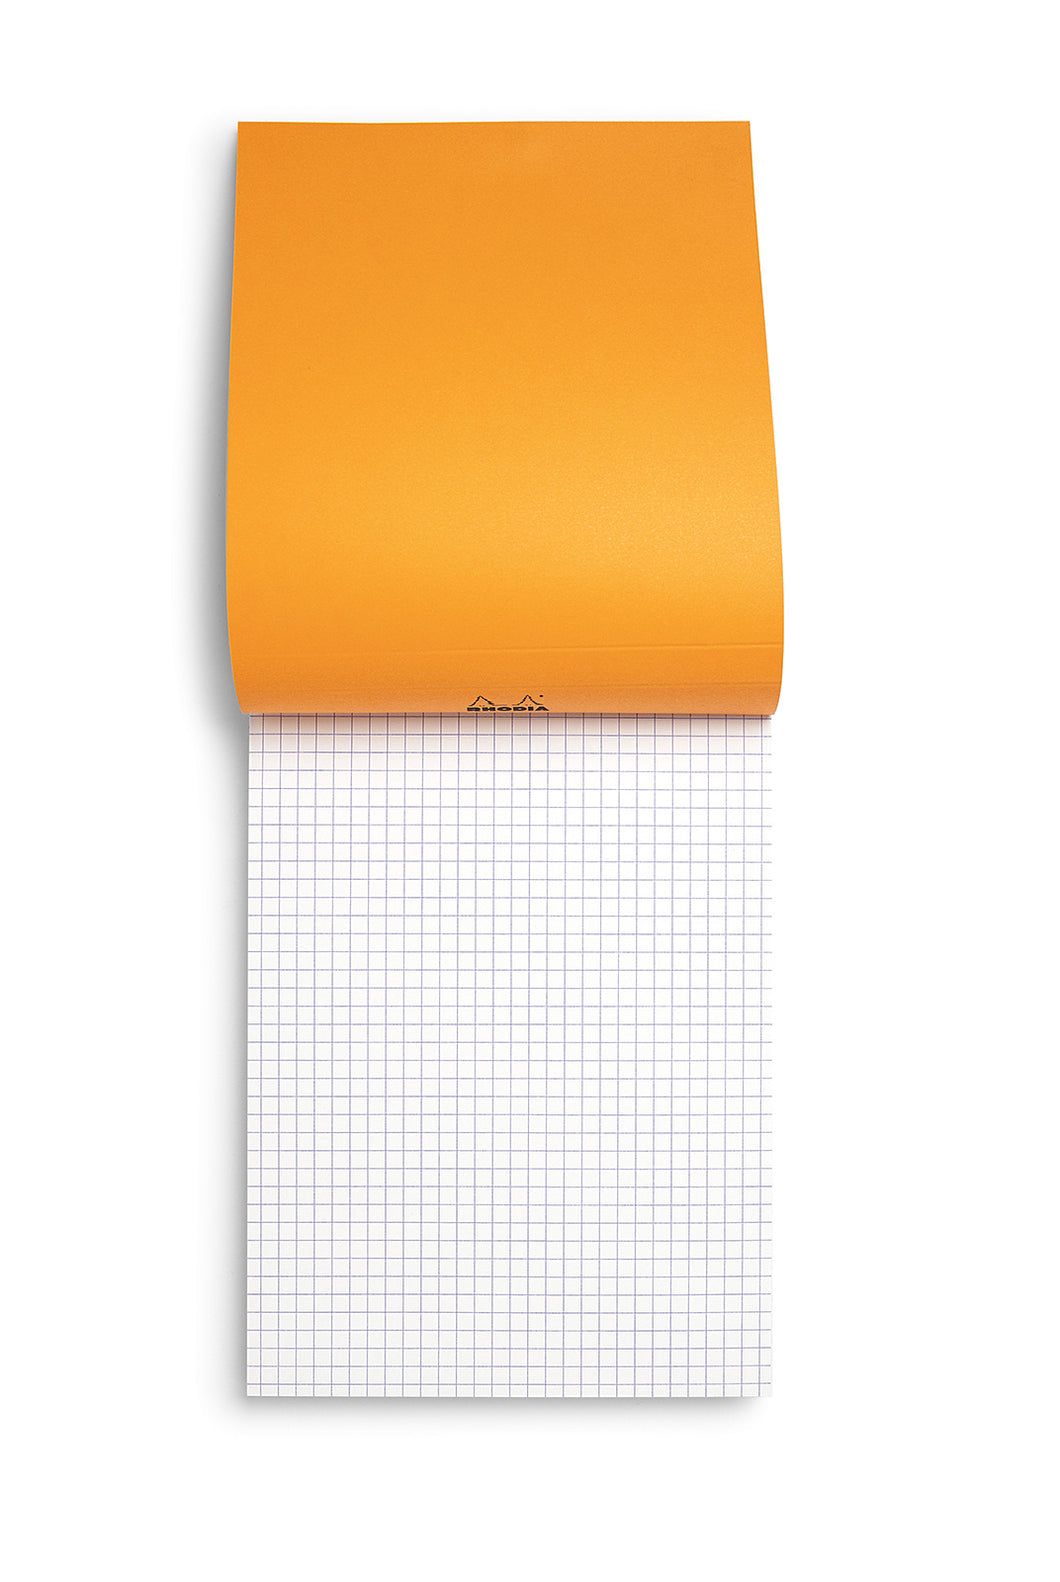 Rhodia - 85th Anniversary Limited Edition Pad #16 - Top Stapled - 5x5 Grid - A5 - Orange